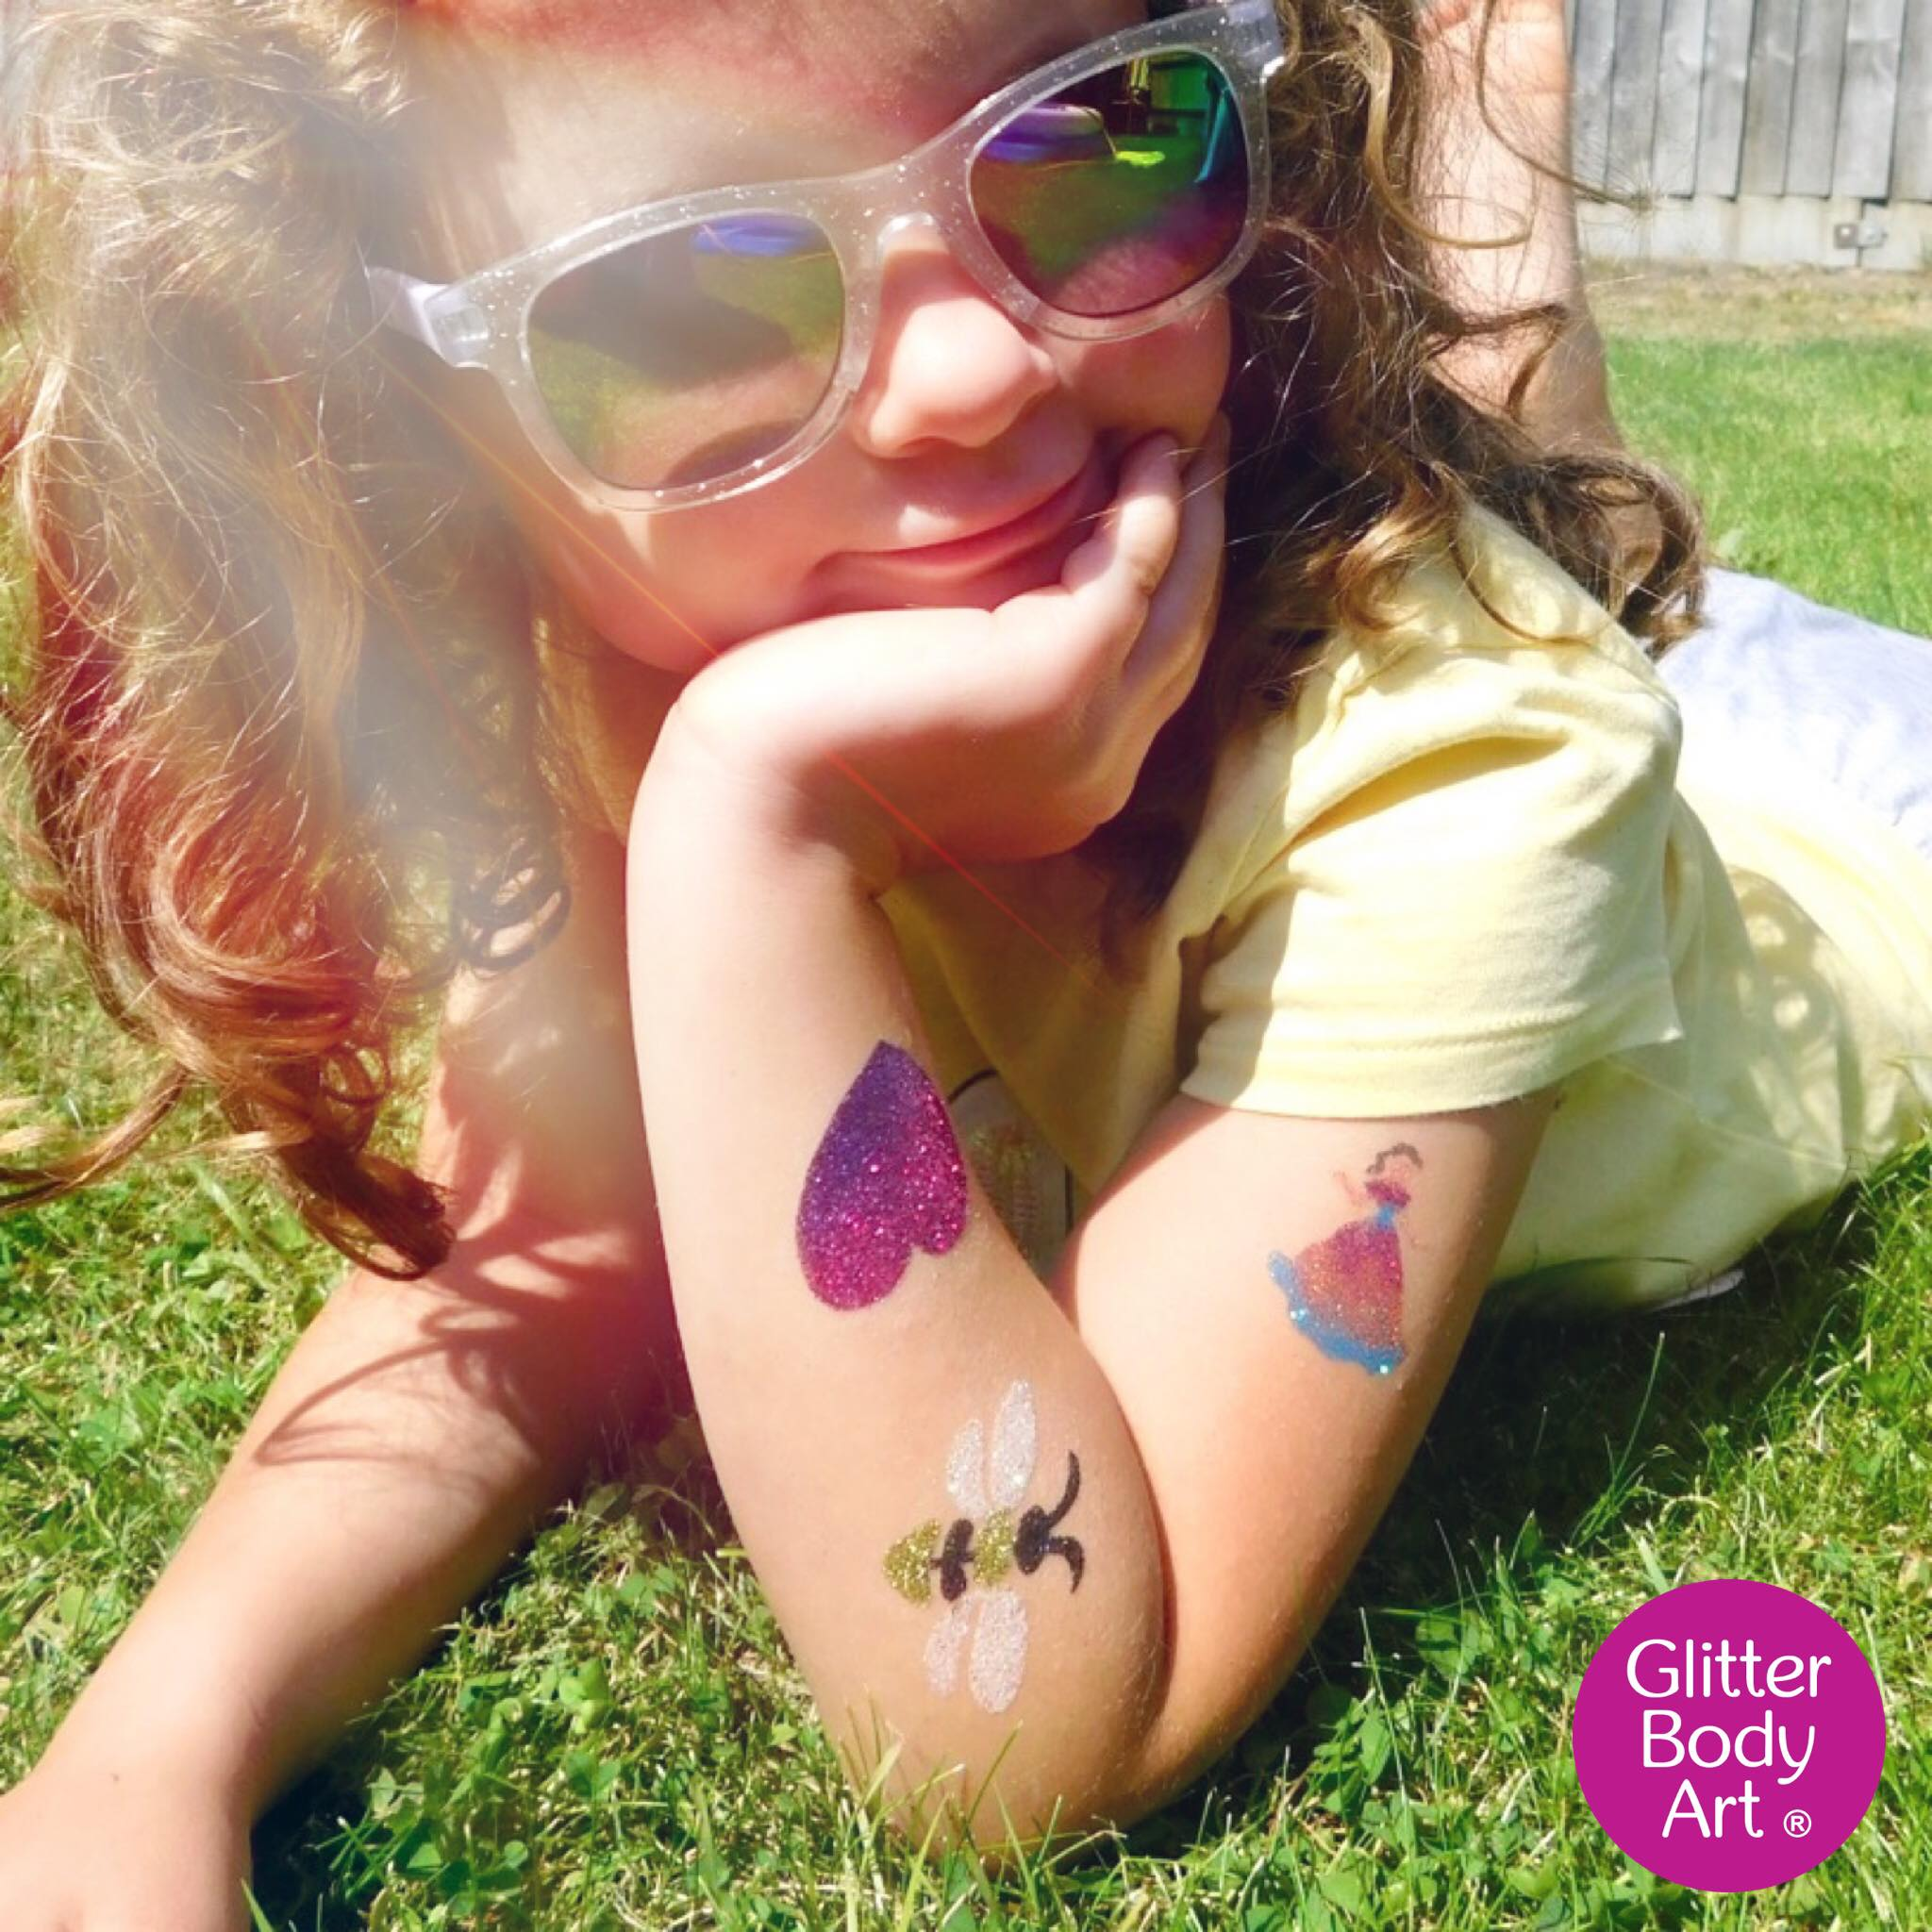 glitter and temporary tattoo ideas for kids birthday party and events